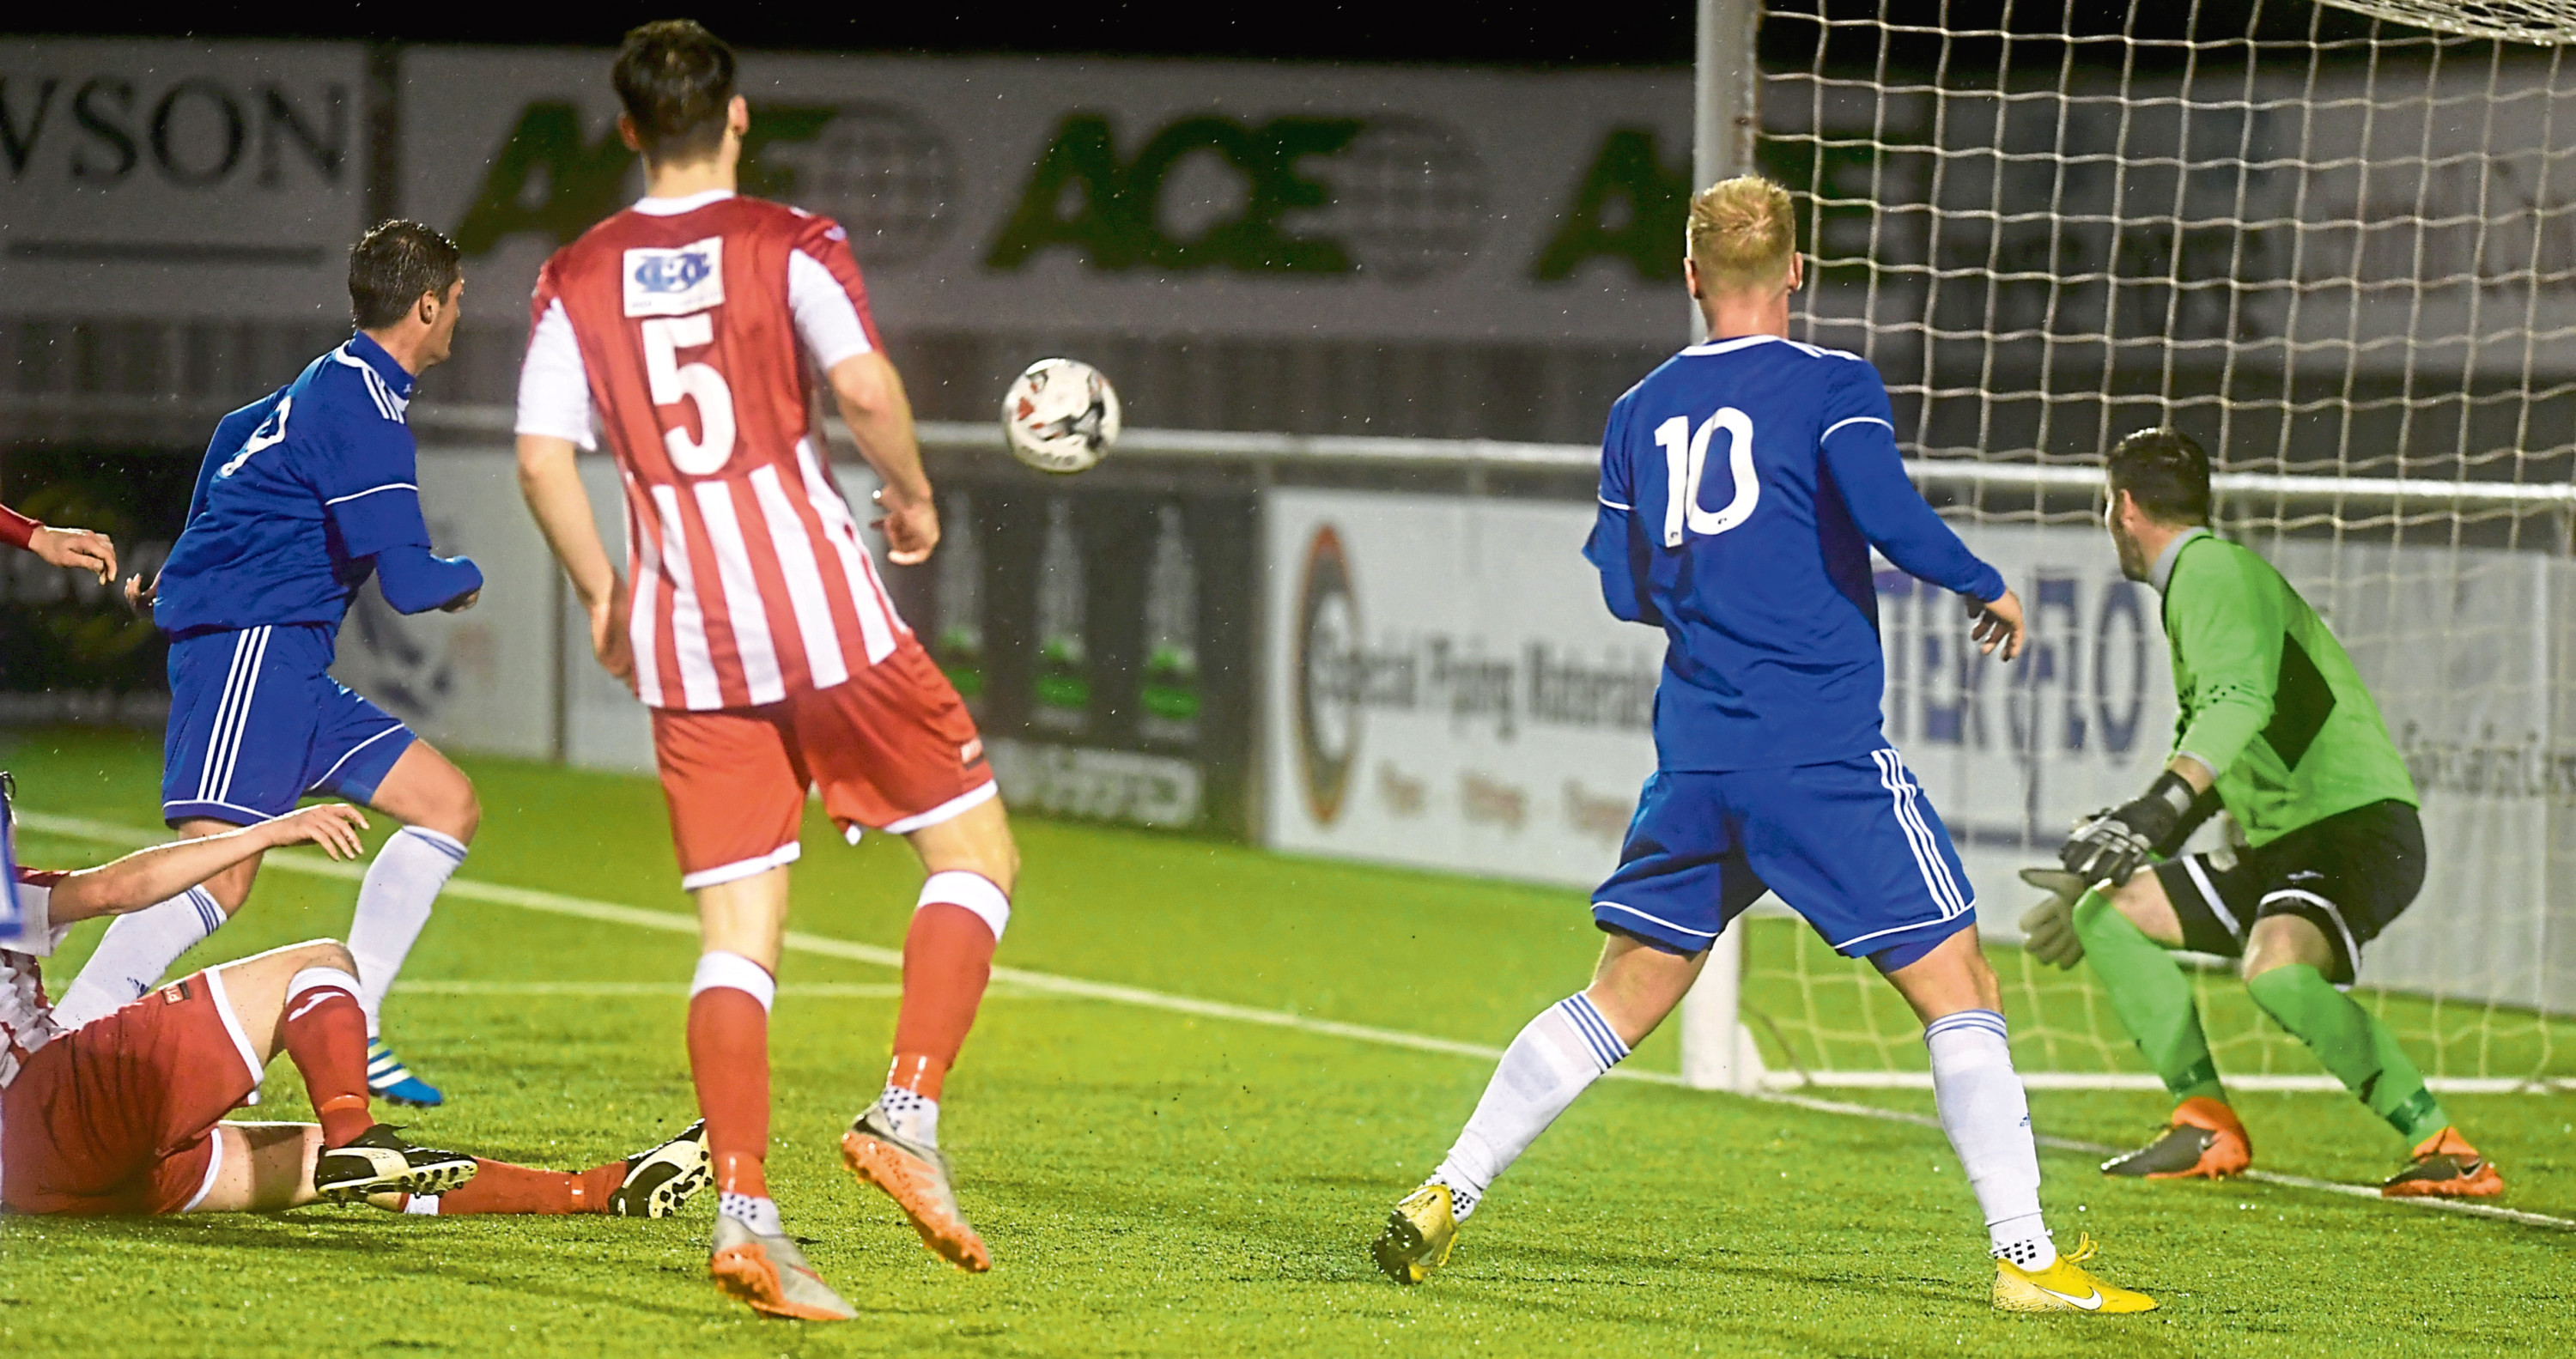 Daniel Park scores Cove's first against Formartine United in the Aberdeenshire Shield. Picture by Chris Sumner.